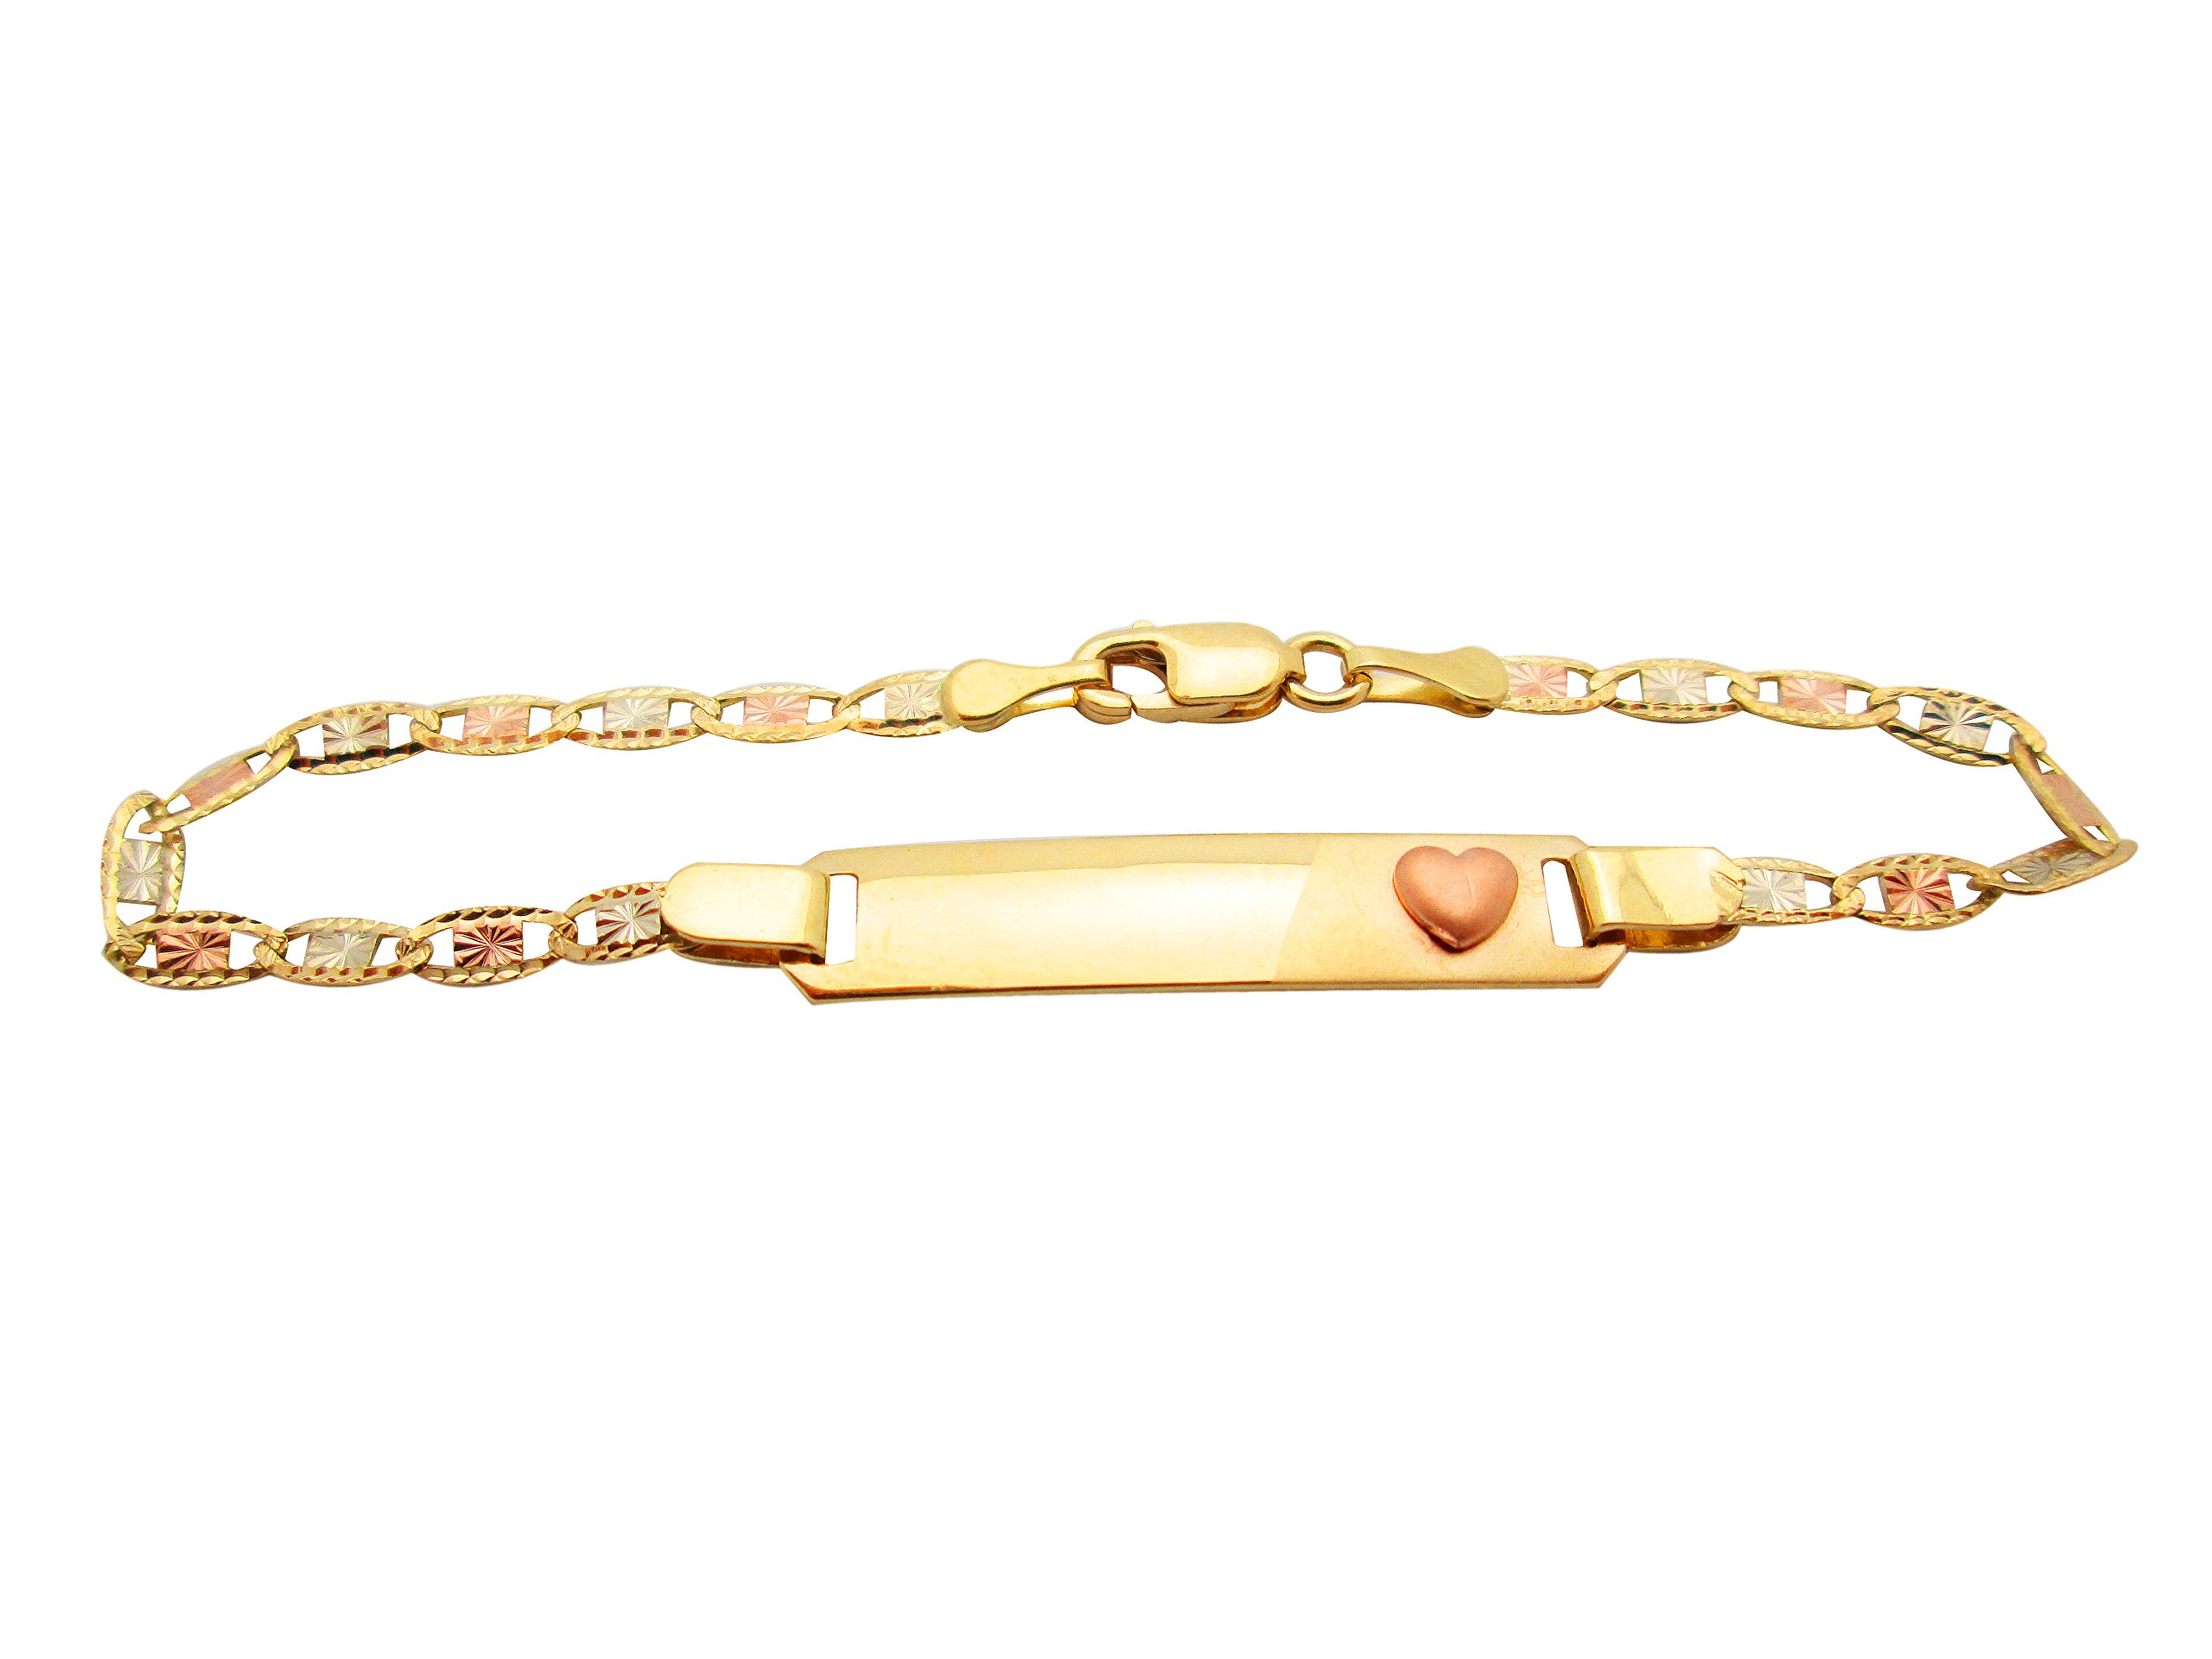 AMZ Jewelry Children's Babies 10k Tri Gold Valentino Link ID Bracelet 5.5 in with Heart